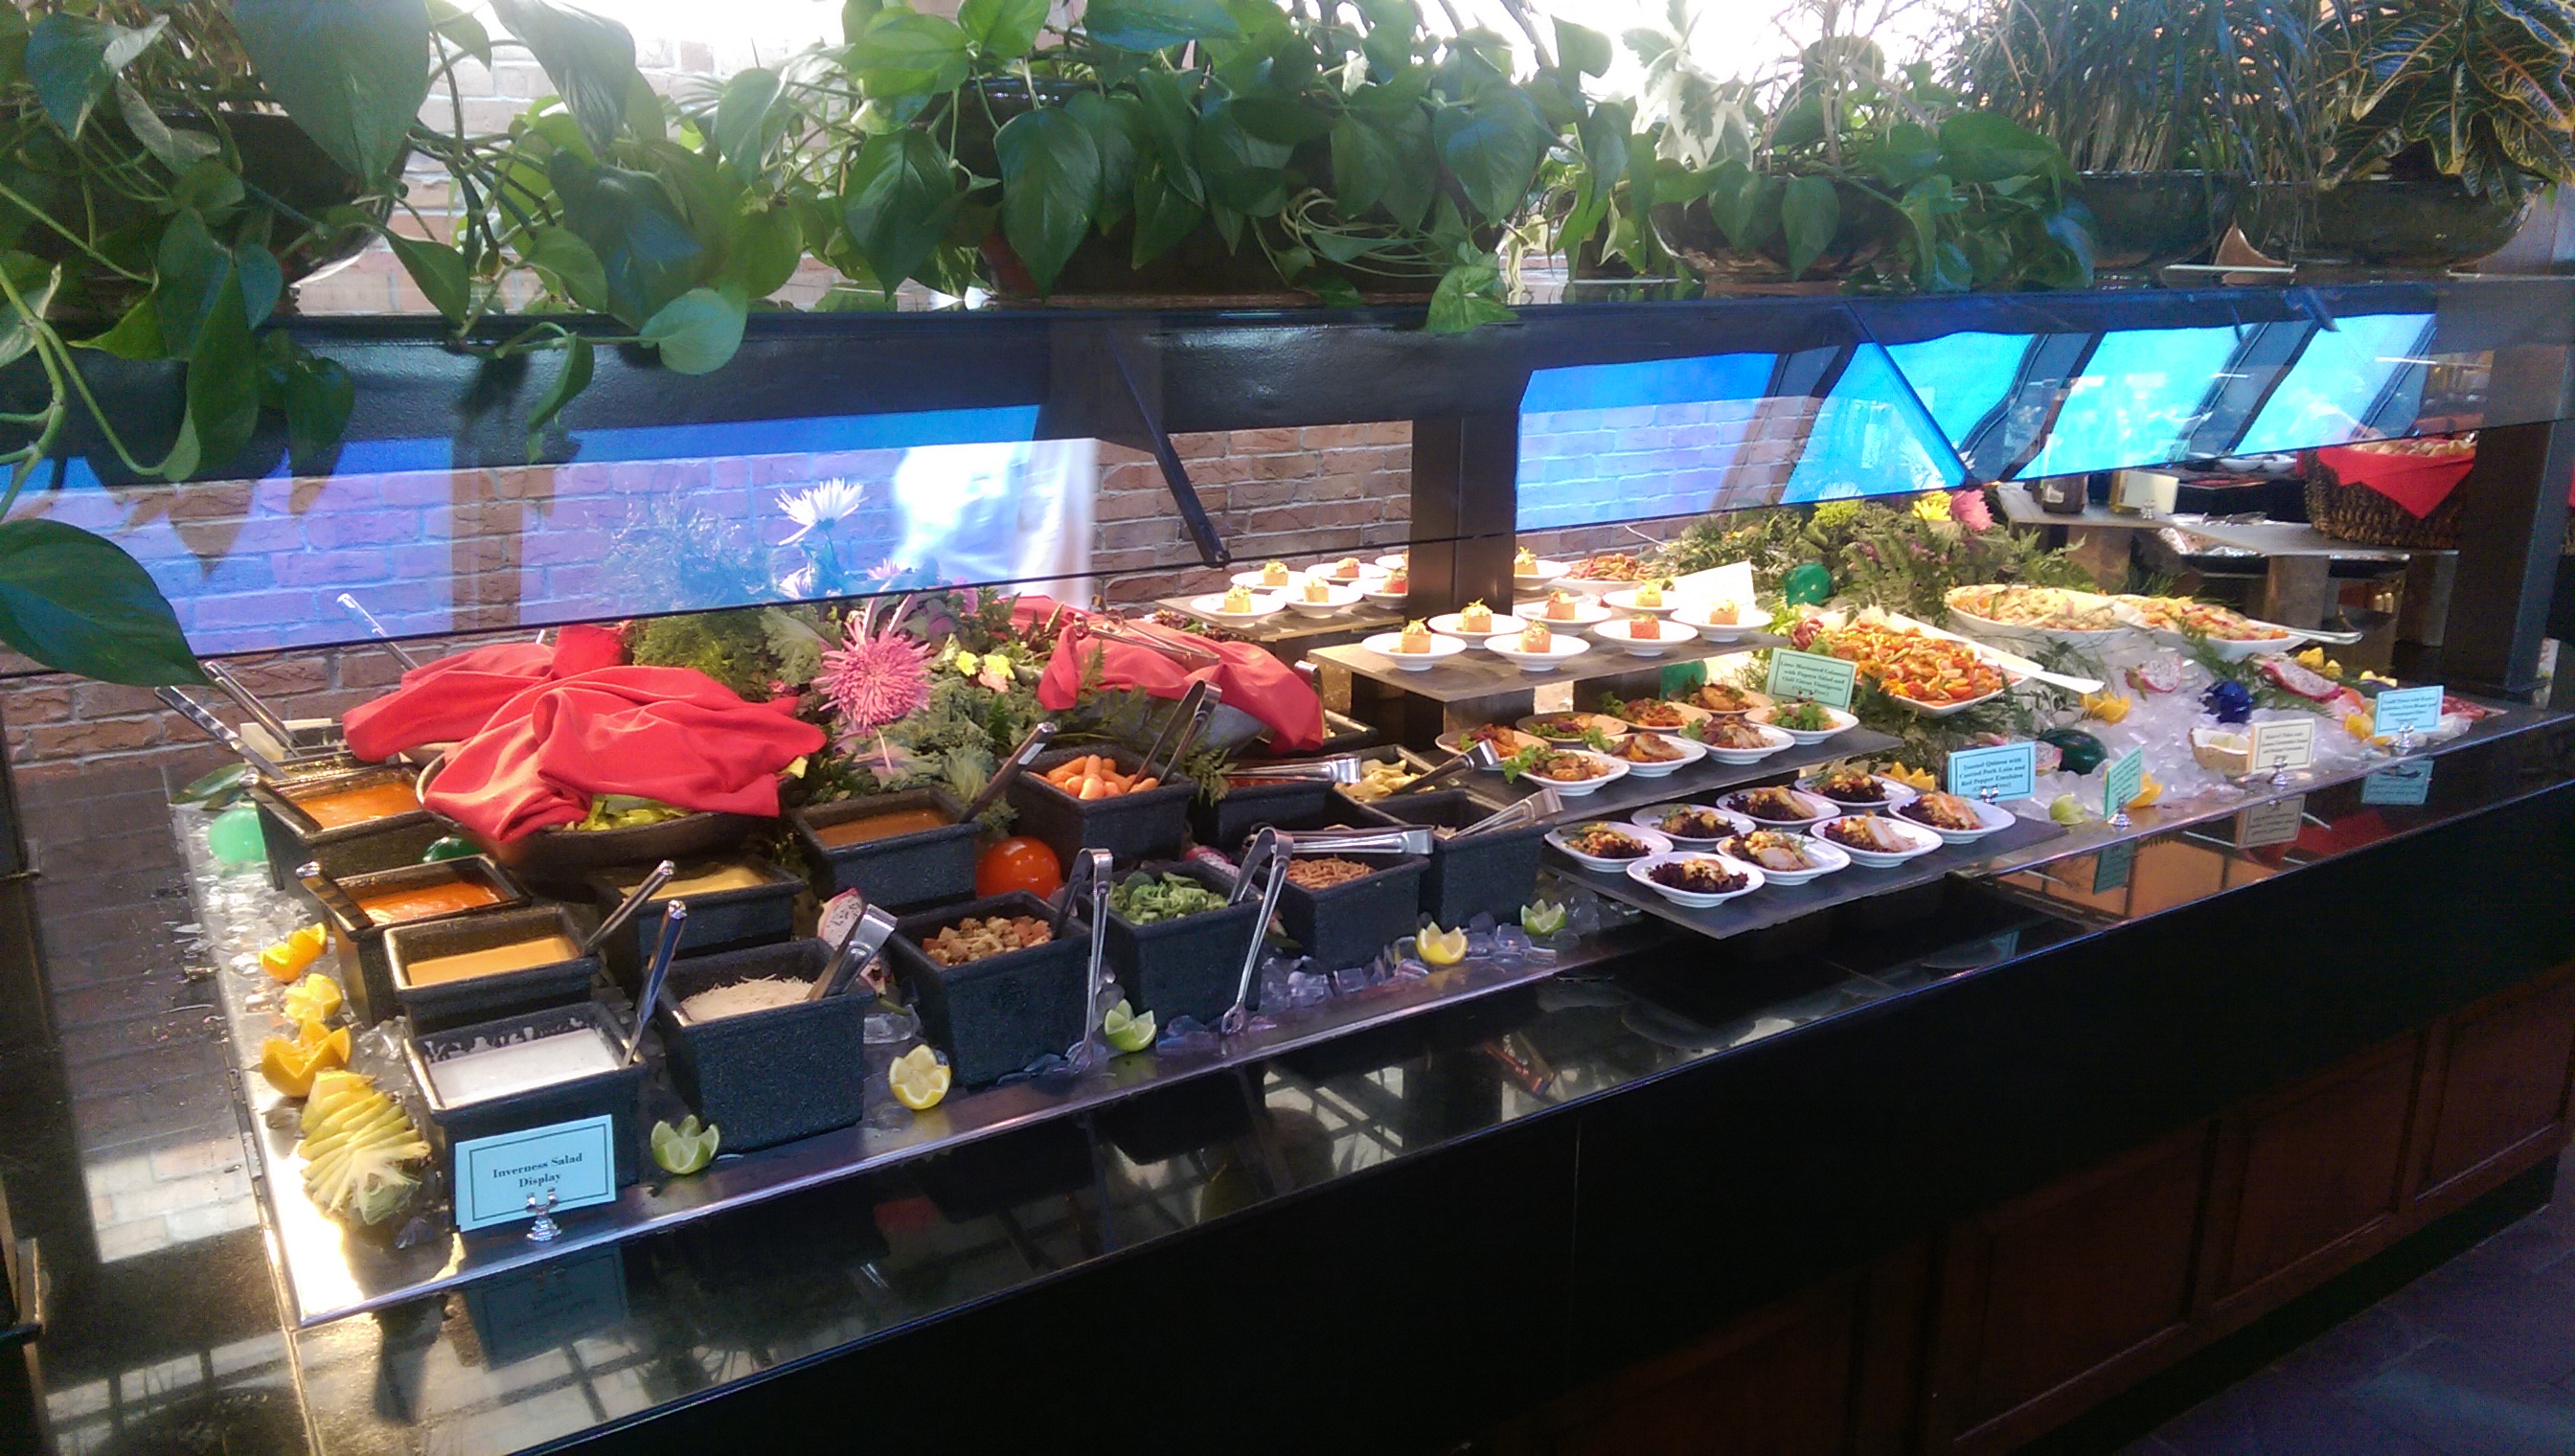 The Inverness offers a bountiful Sunday brunch buffet ...